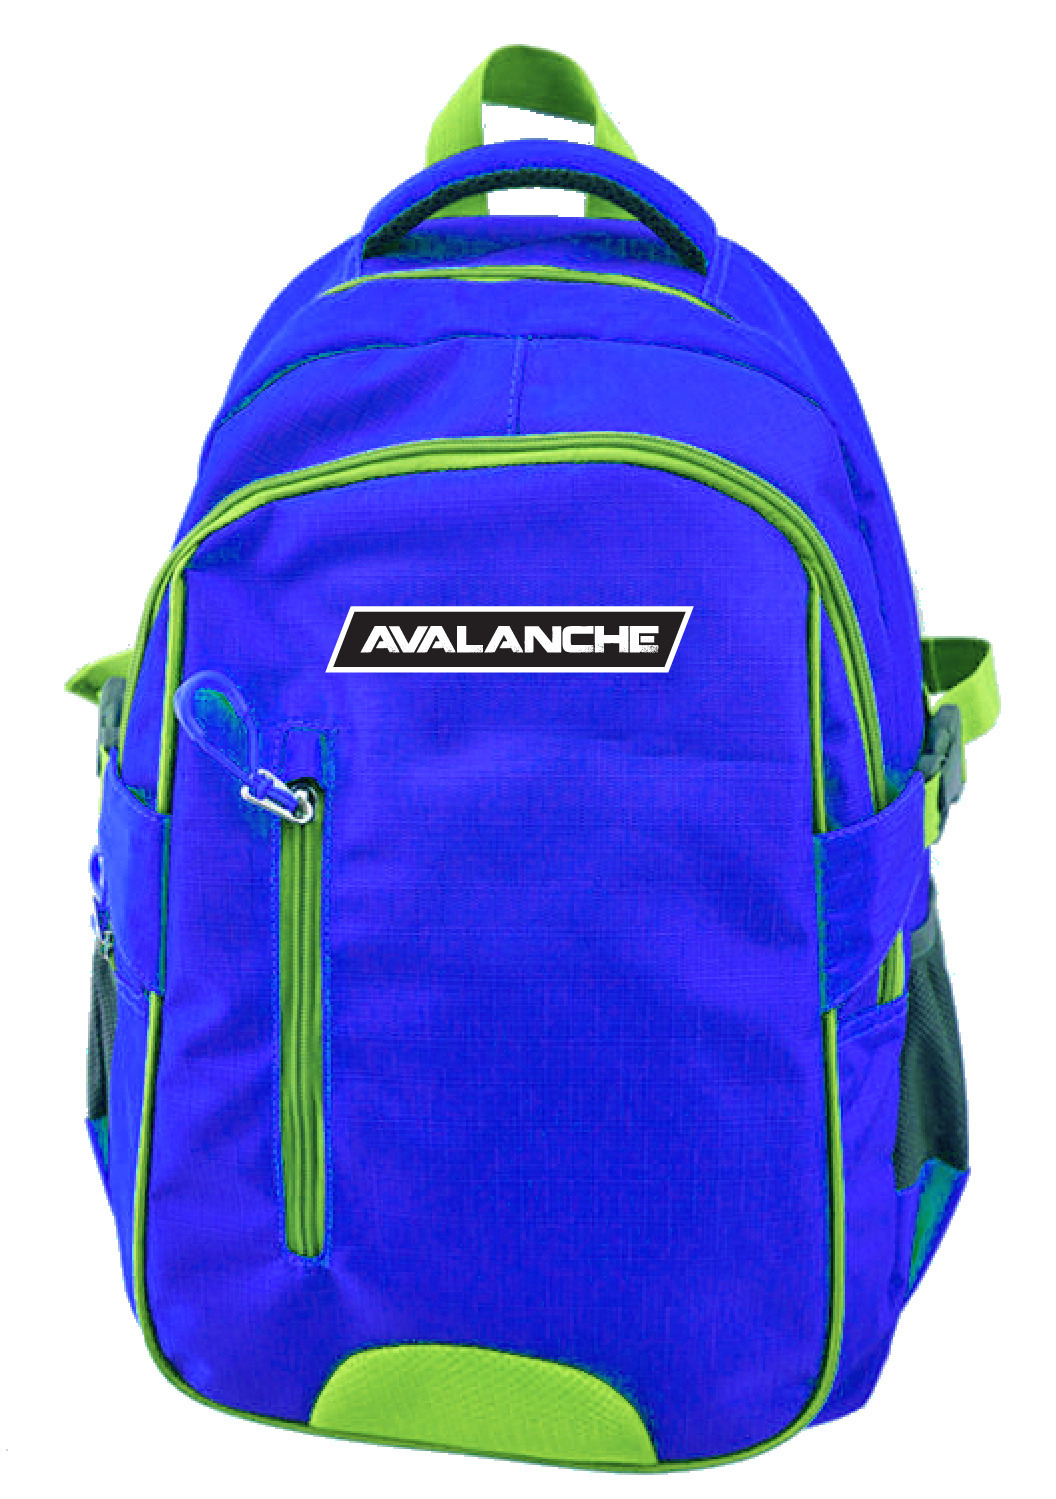 Avalanche Standard Student Backpack - Blue-Lime